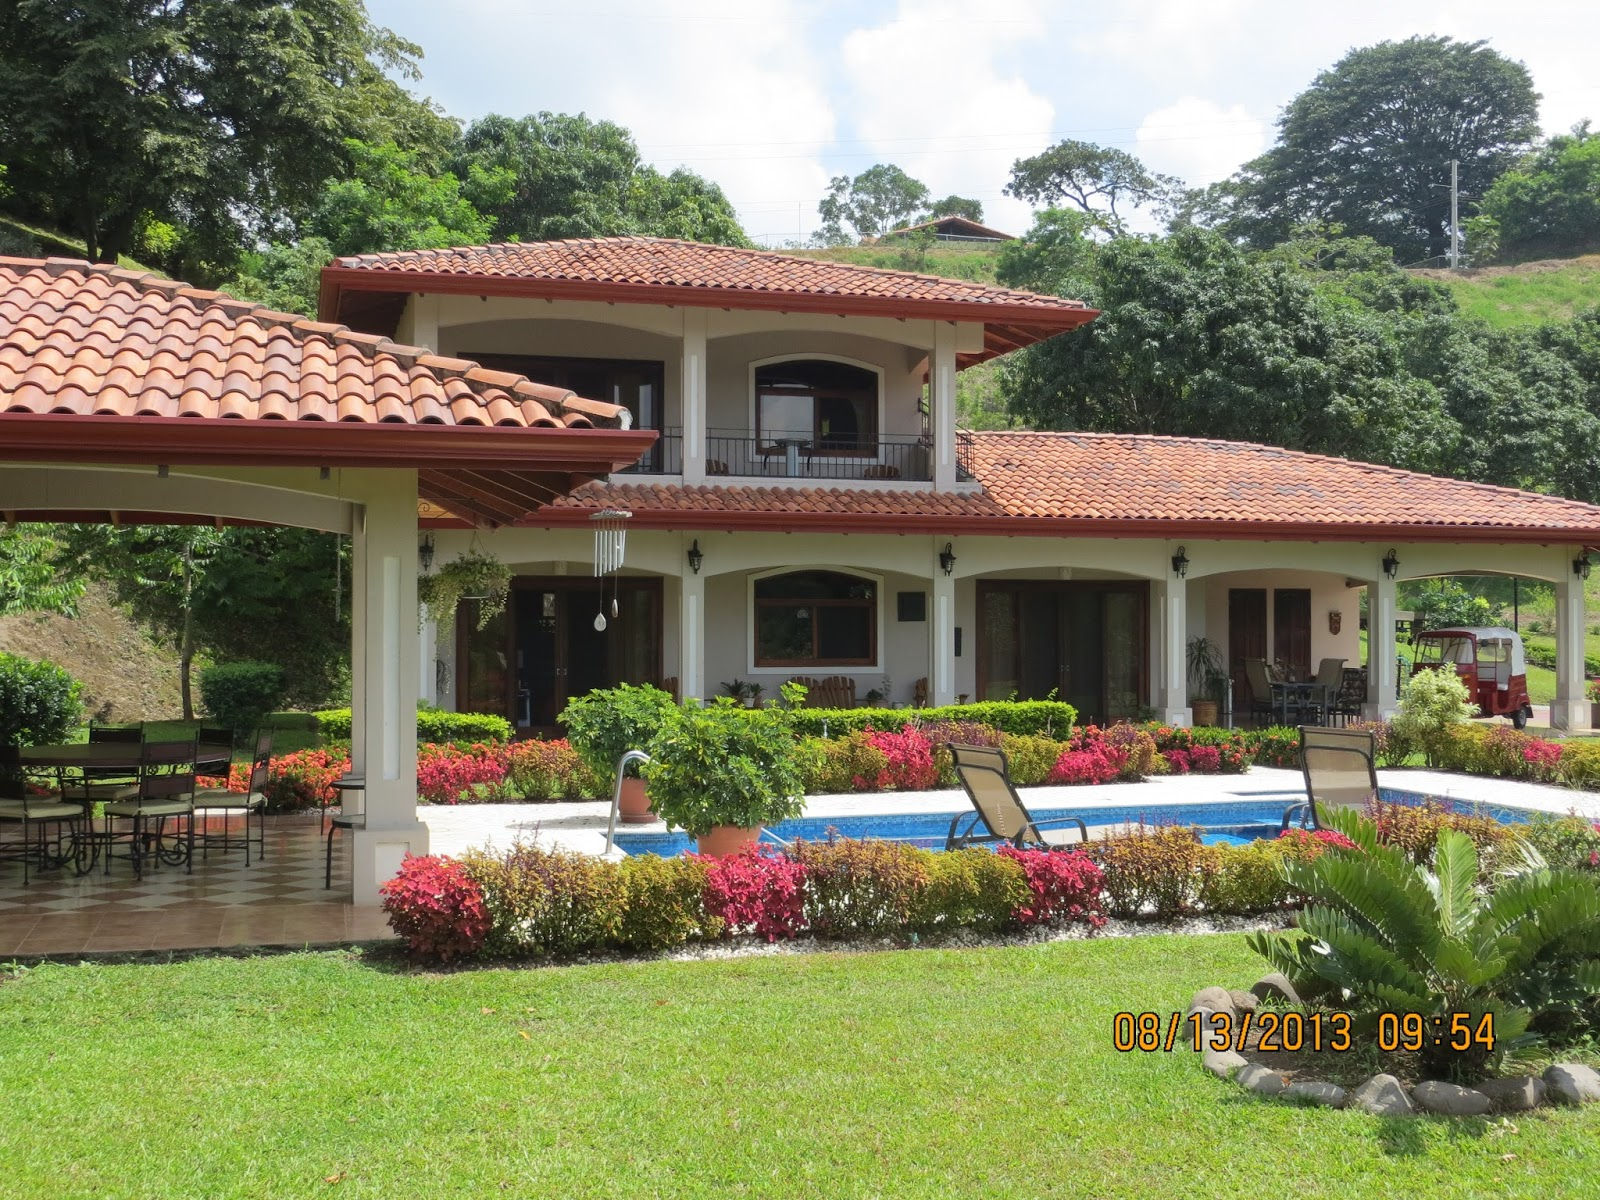 Homes Properties and Lots in Atenas Costa Rica – Costa Rica Home Floor Plans